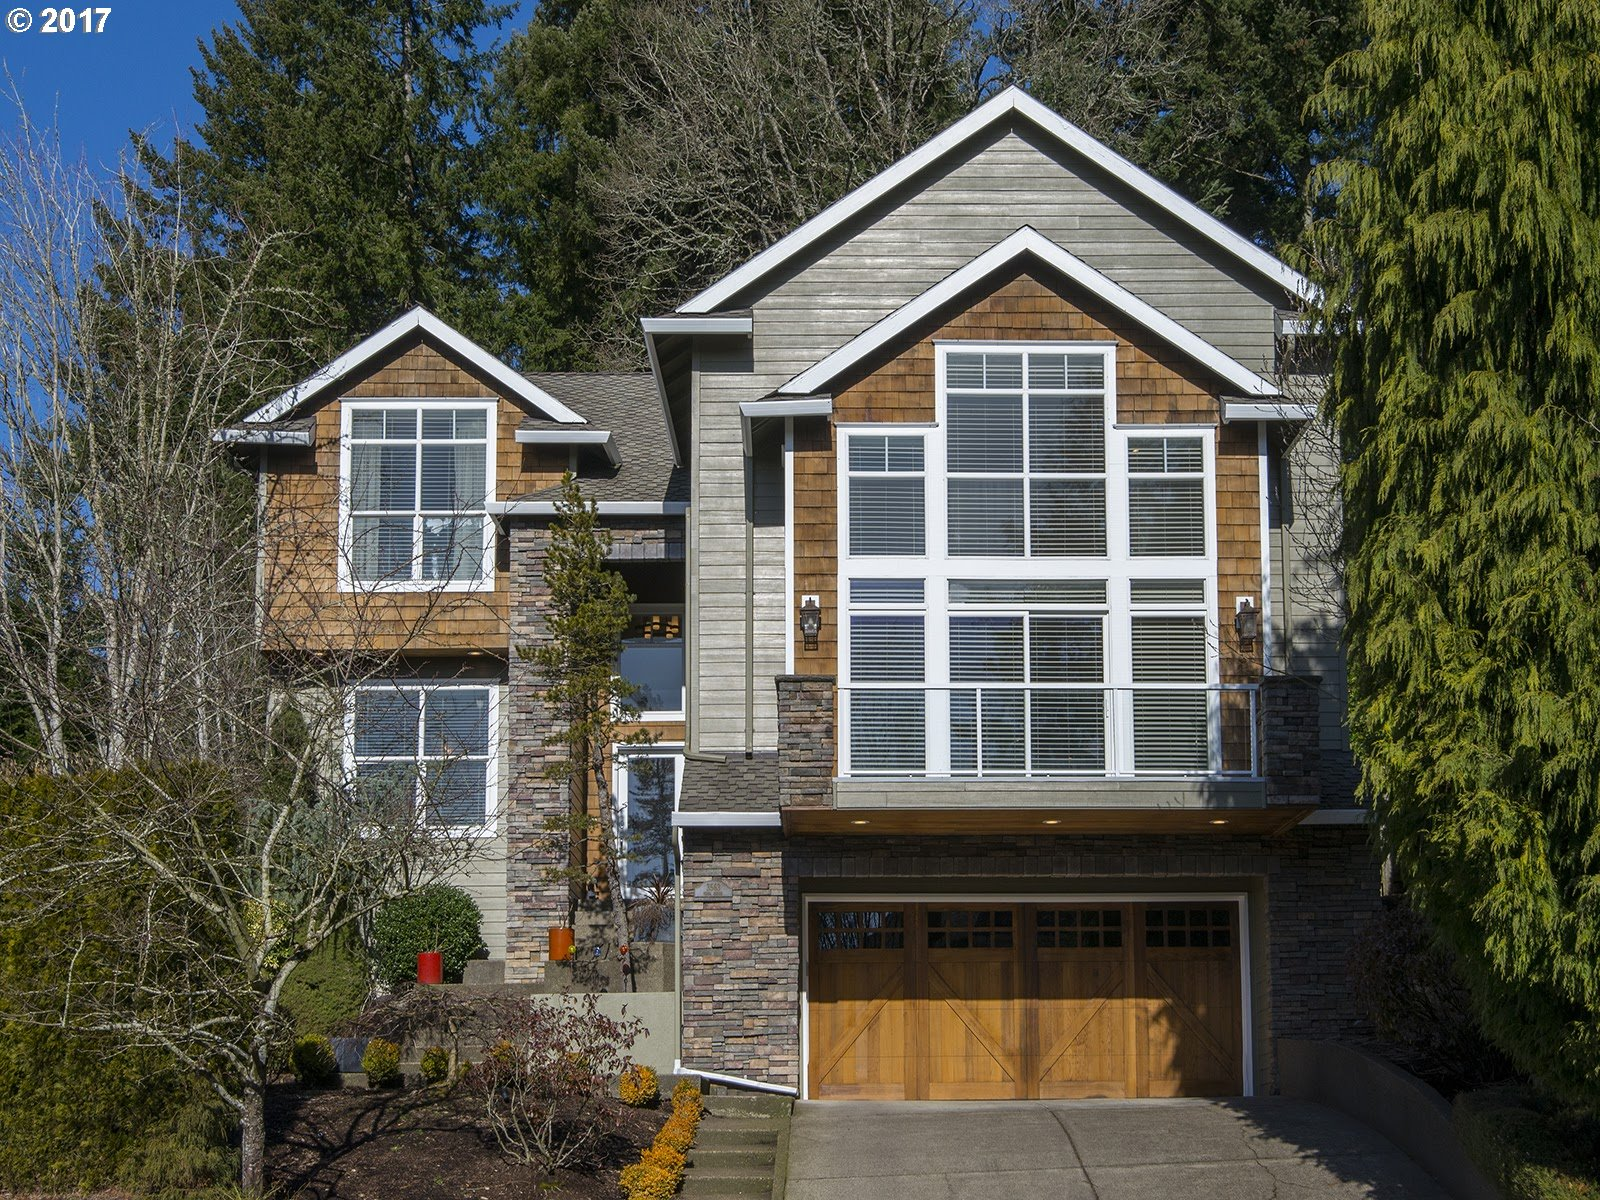 2760 sq. ft 3 bedrooms 2 bathrooms  House For Sale, West Linn, OR